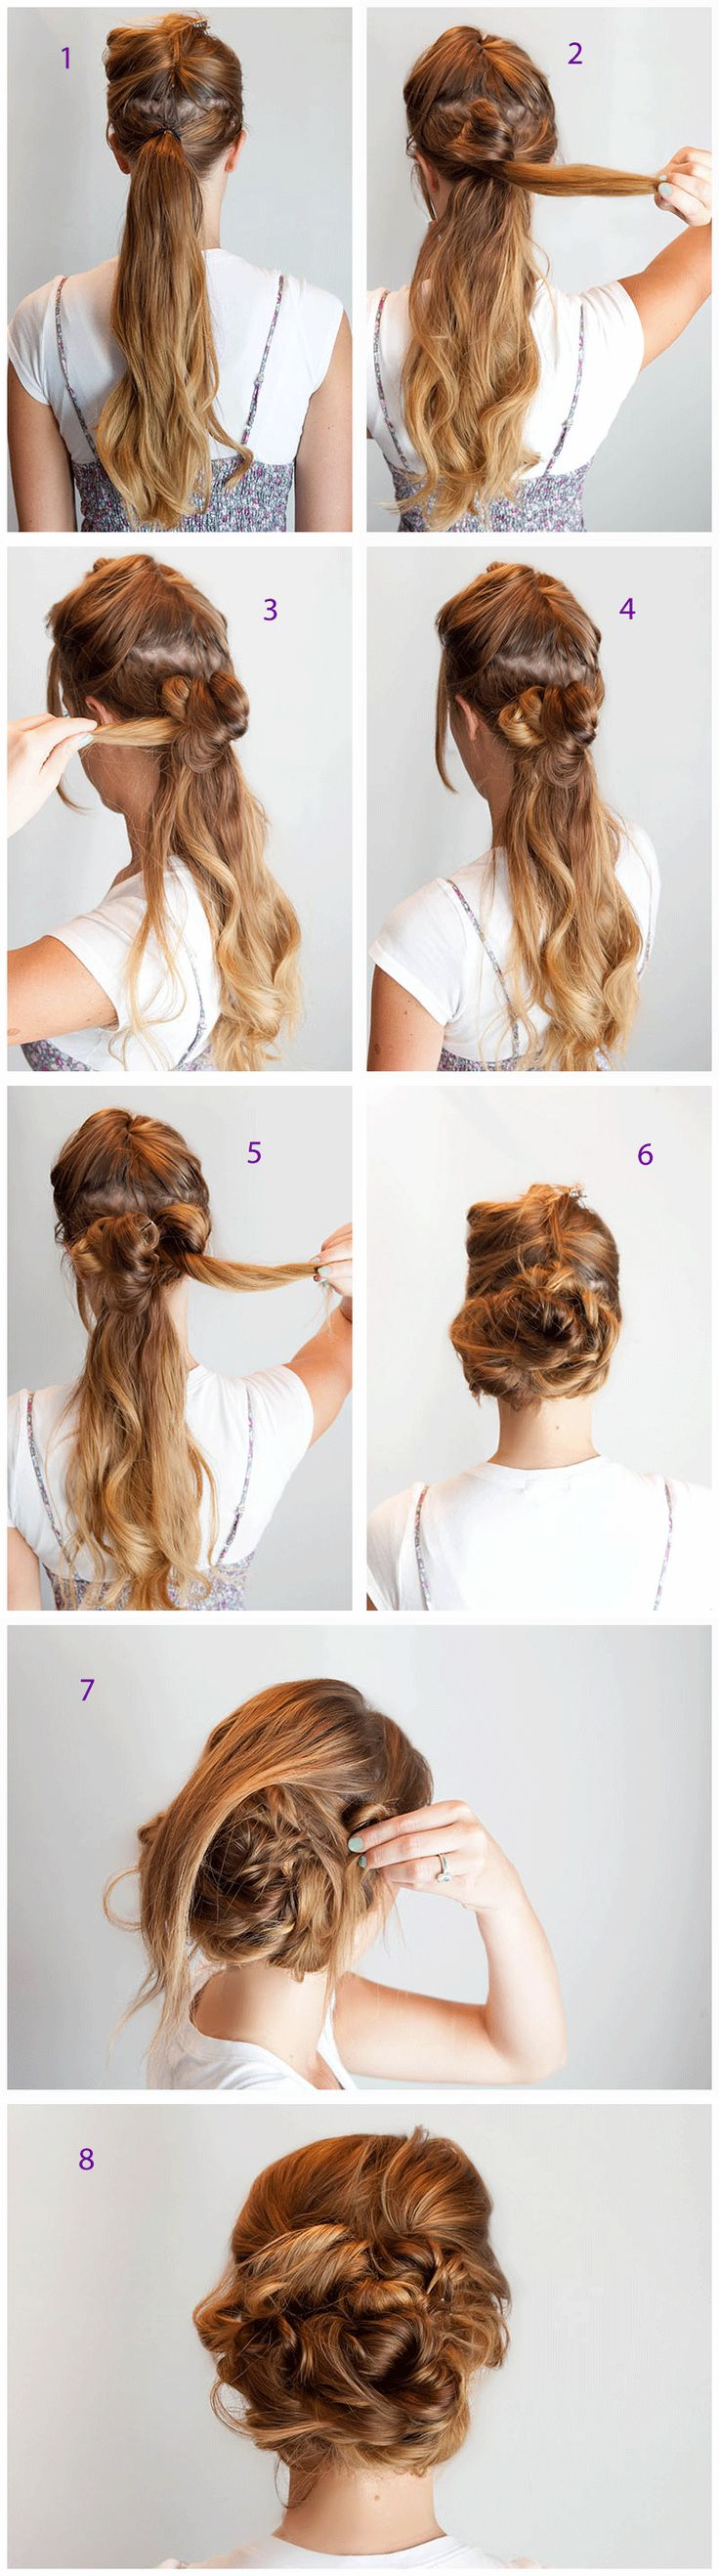 best images about hair embellishments on pinterest updo your